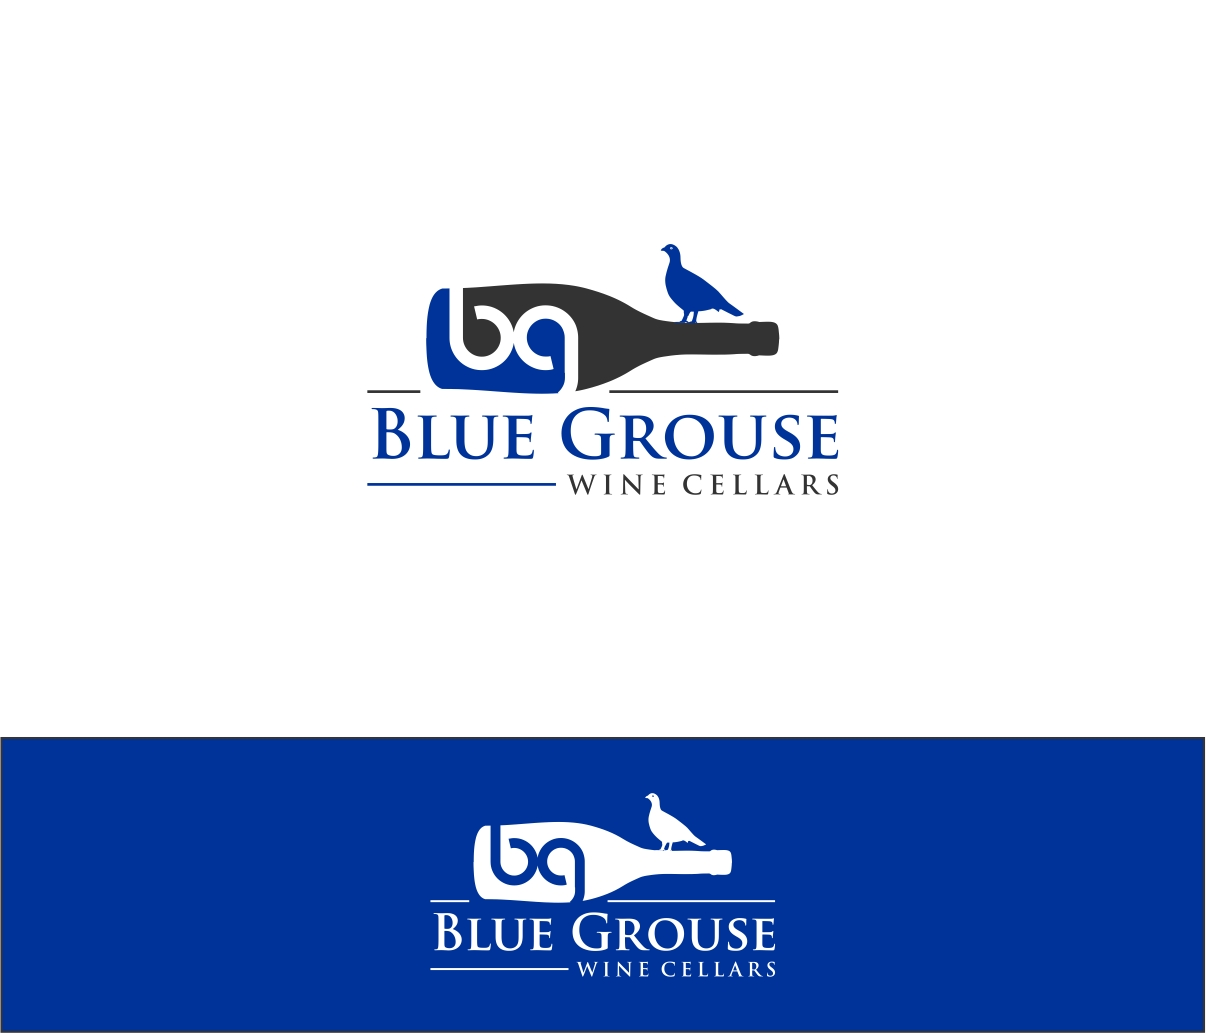 Logo Design by haidu - Entry No. 20 in the Logo Design Contest Creative Logo Design for Blue Grouse Wine Cellars.